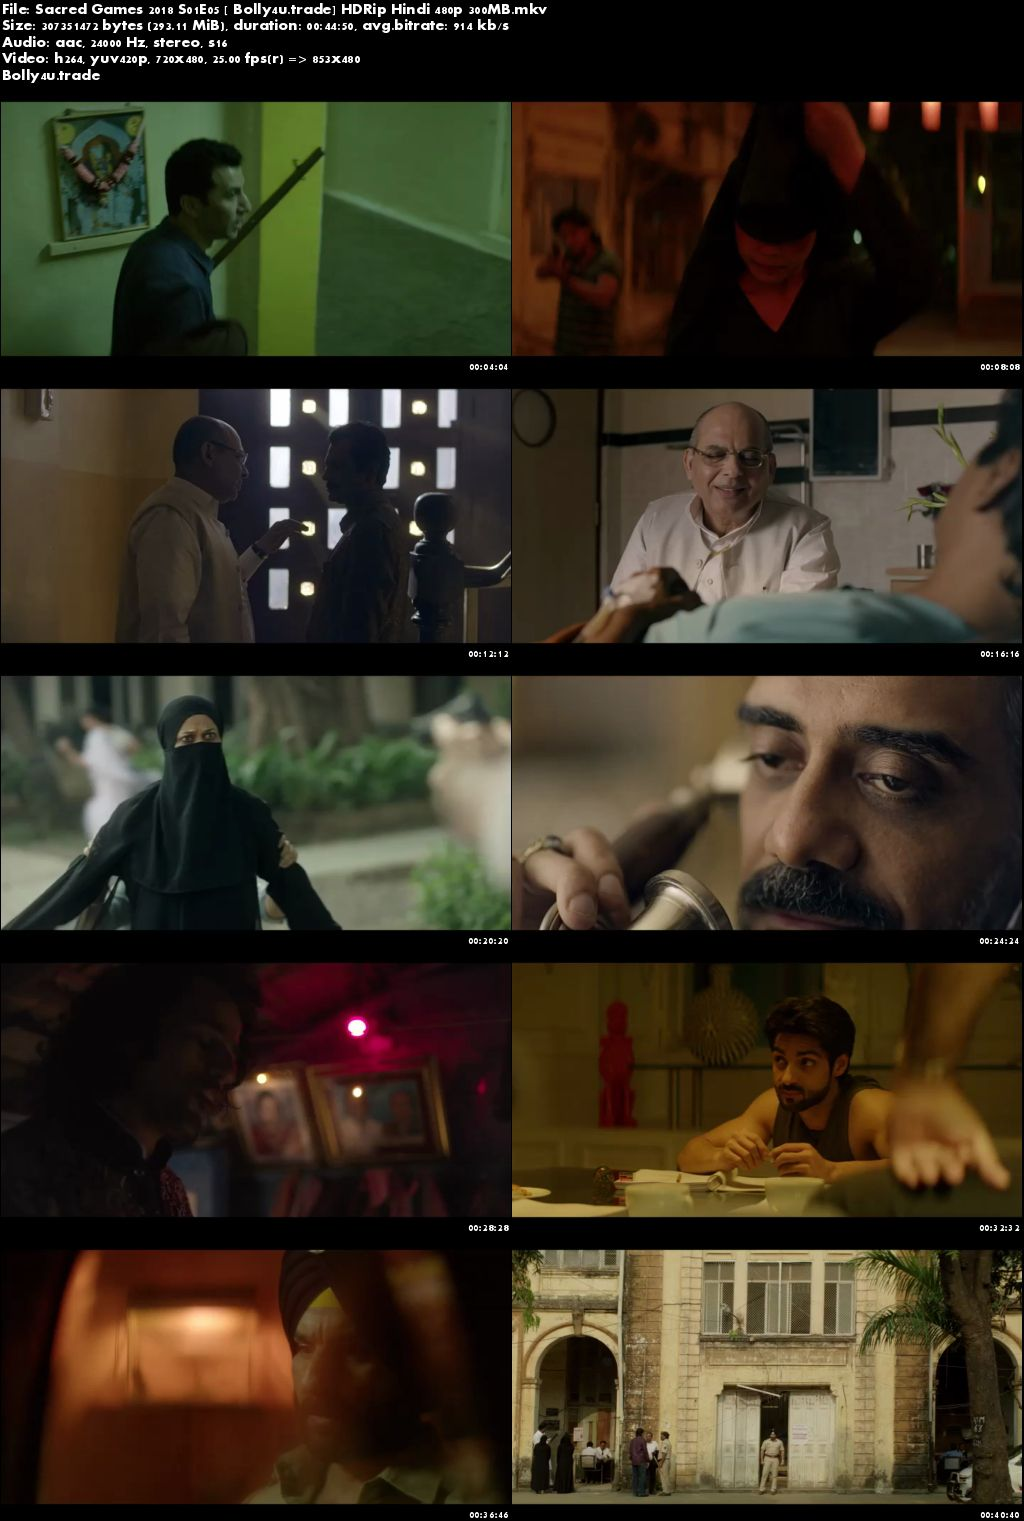 Sacred Games 2018 S01E05 HDRip 300MB Hindi 480p Download